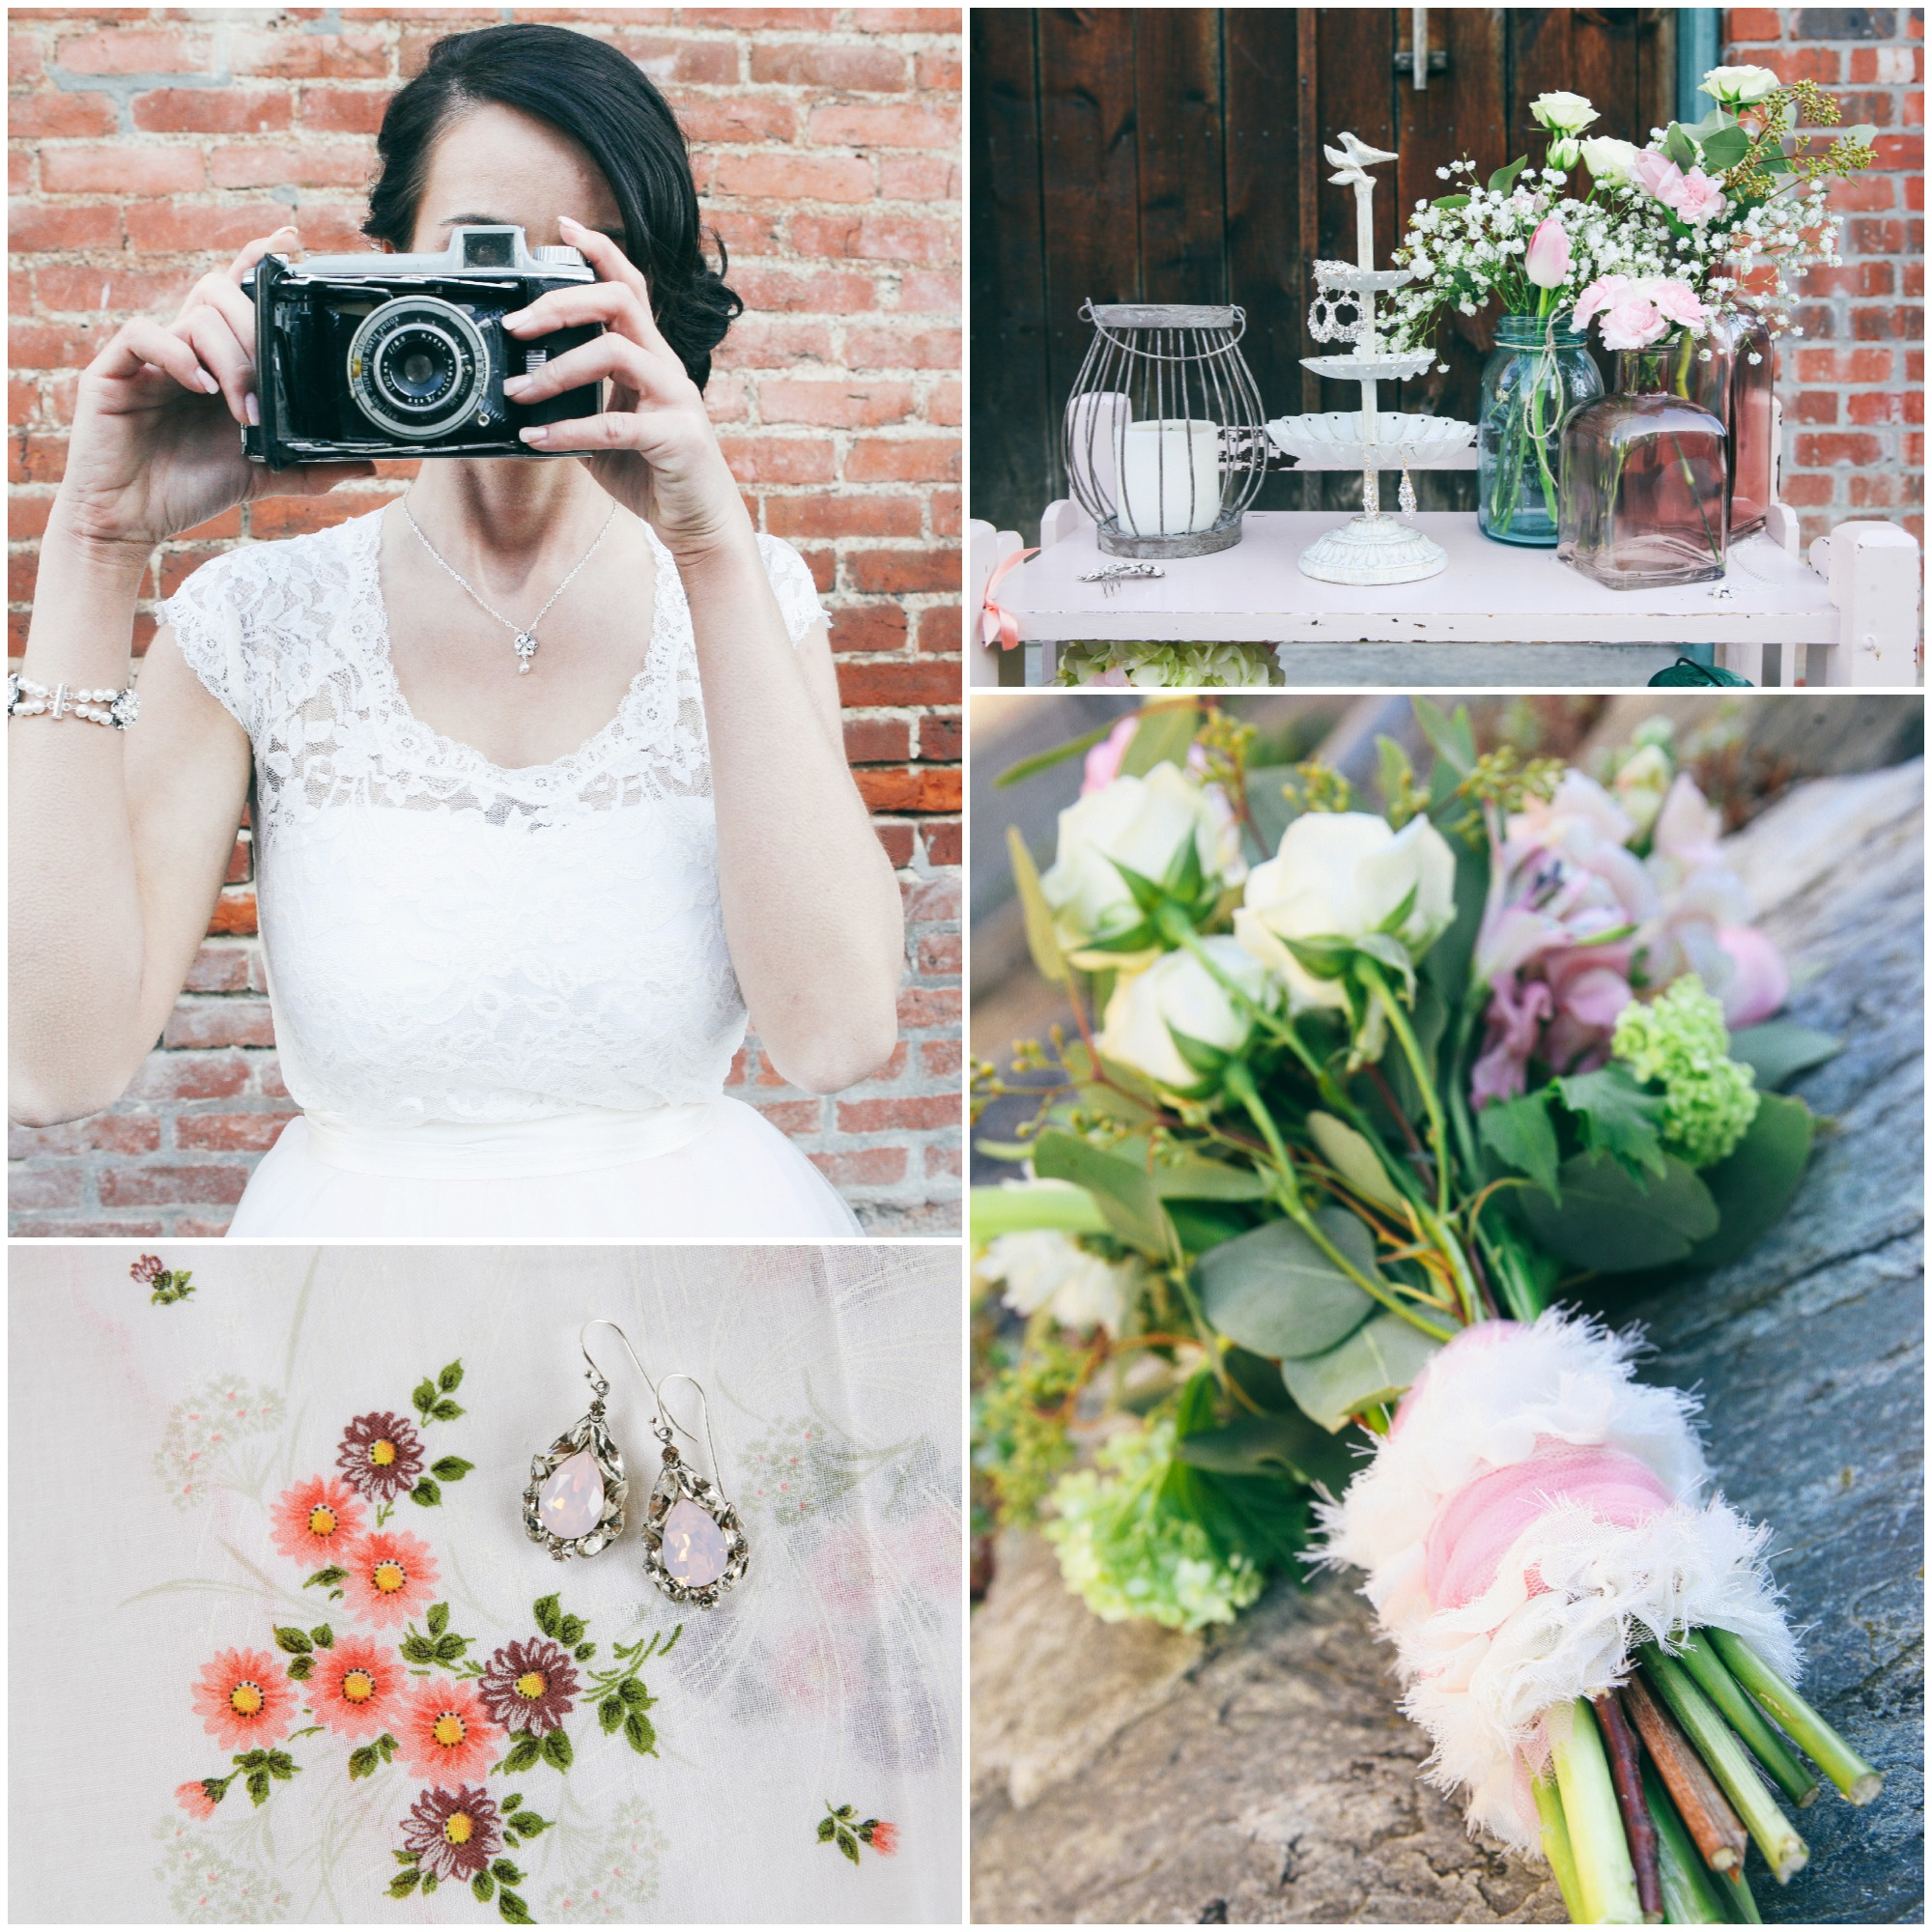 Fall Vintage Wedding Ideas: Shabby Chic Style Wedding Inspiration